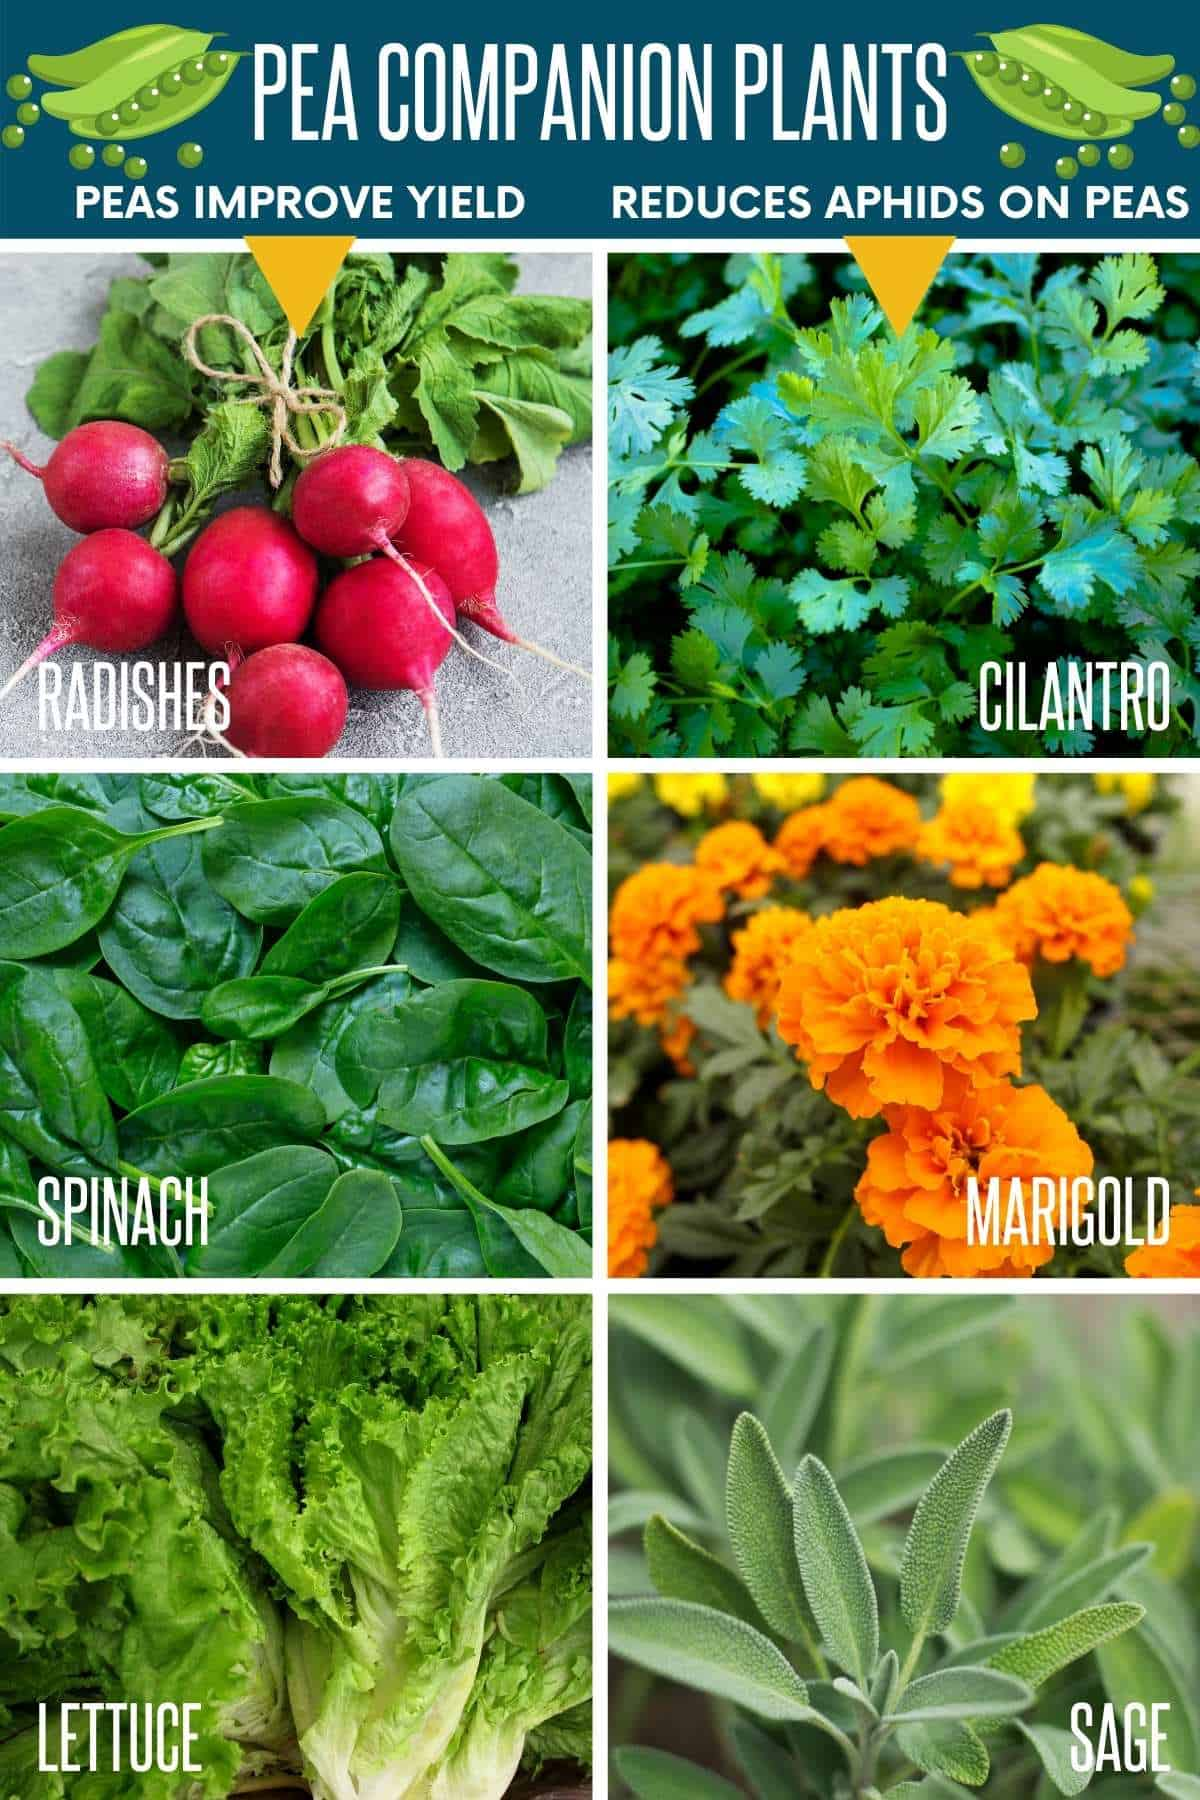 A collage image shows various companion plants for peas.